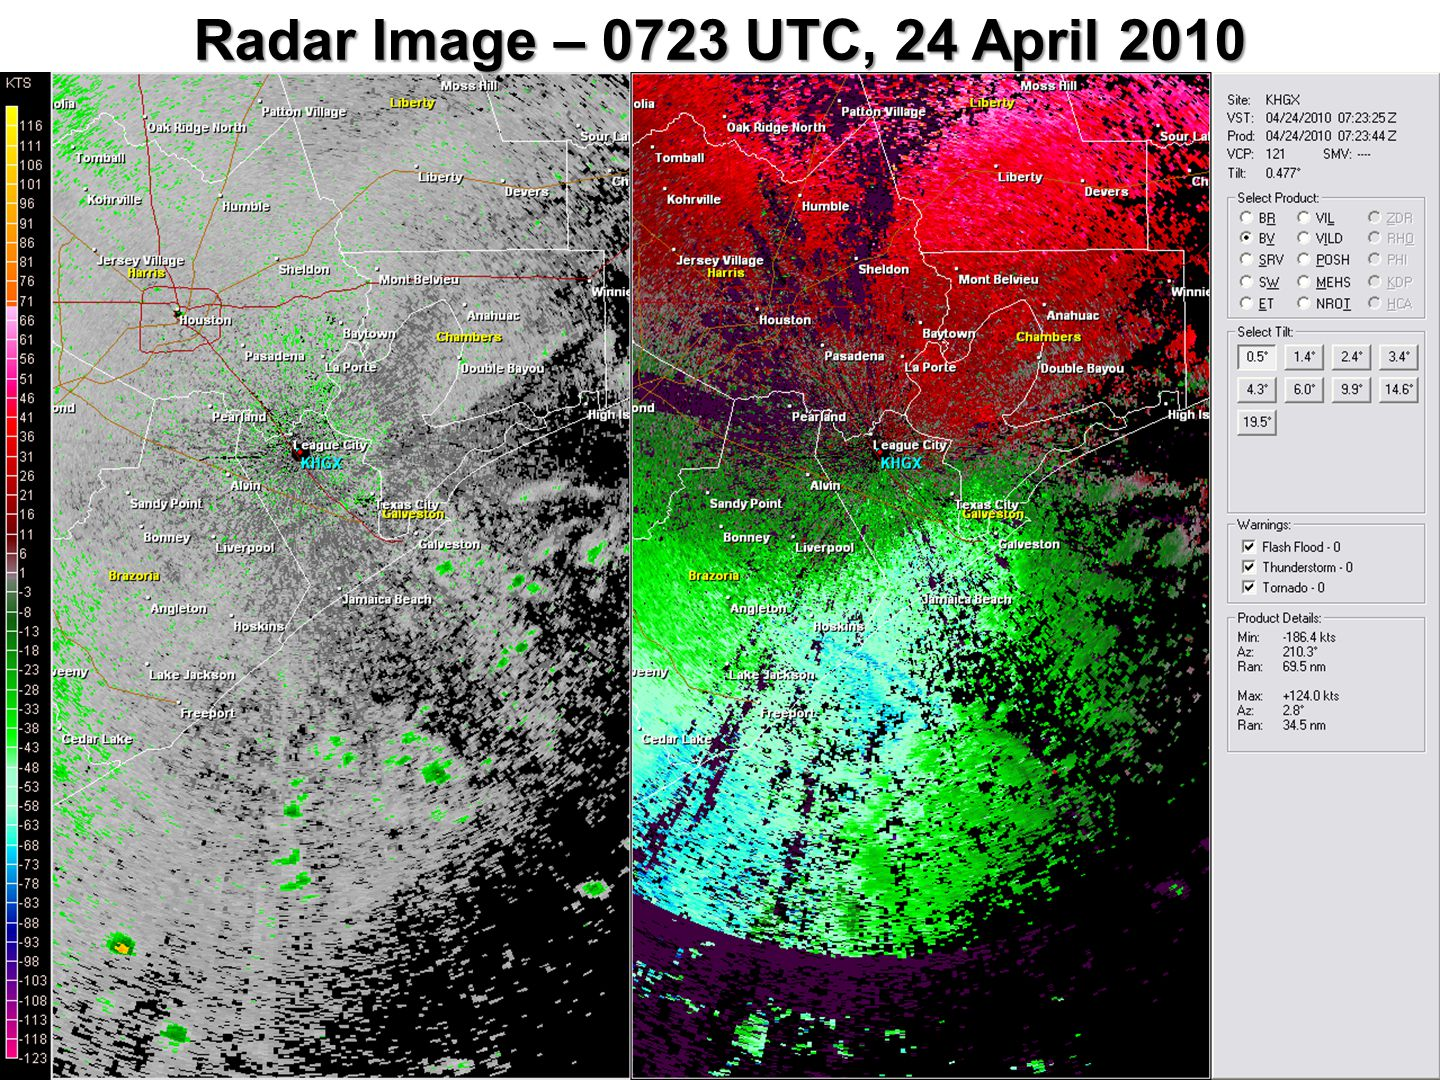 Radar Image – 0723 UTC, 24 April 2010